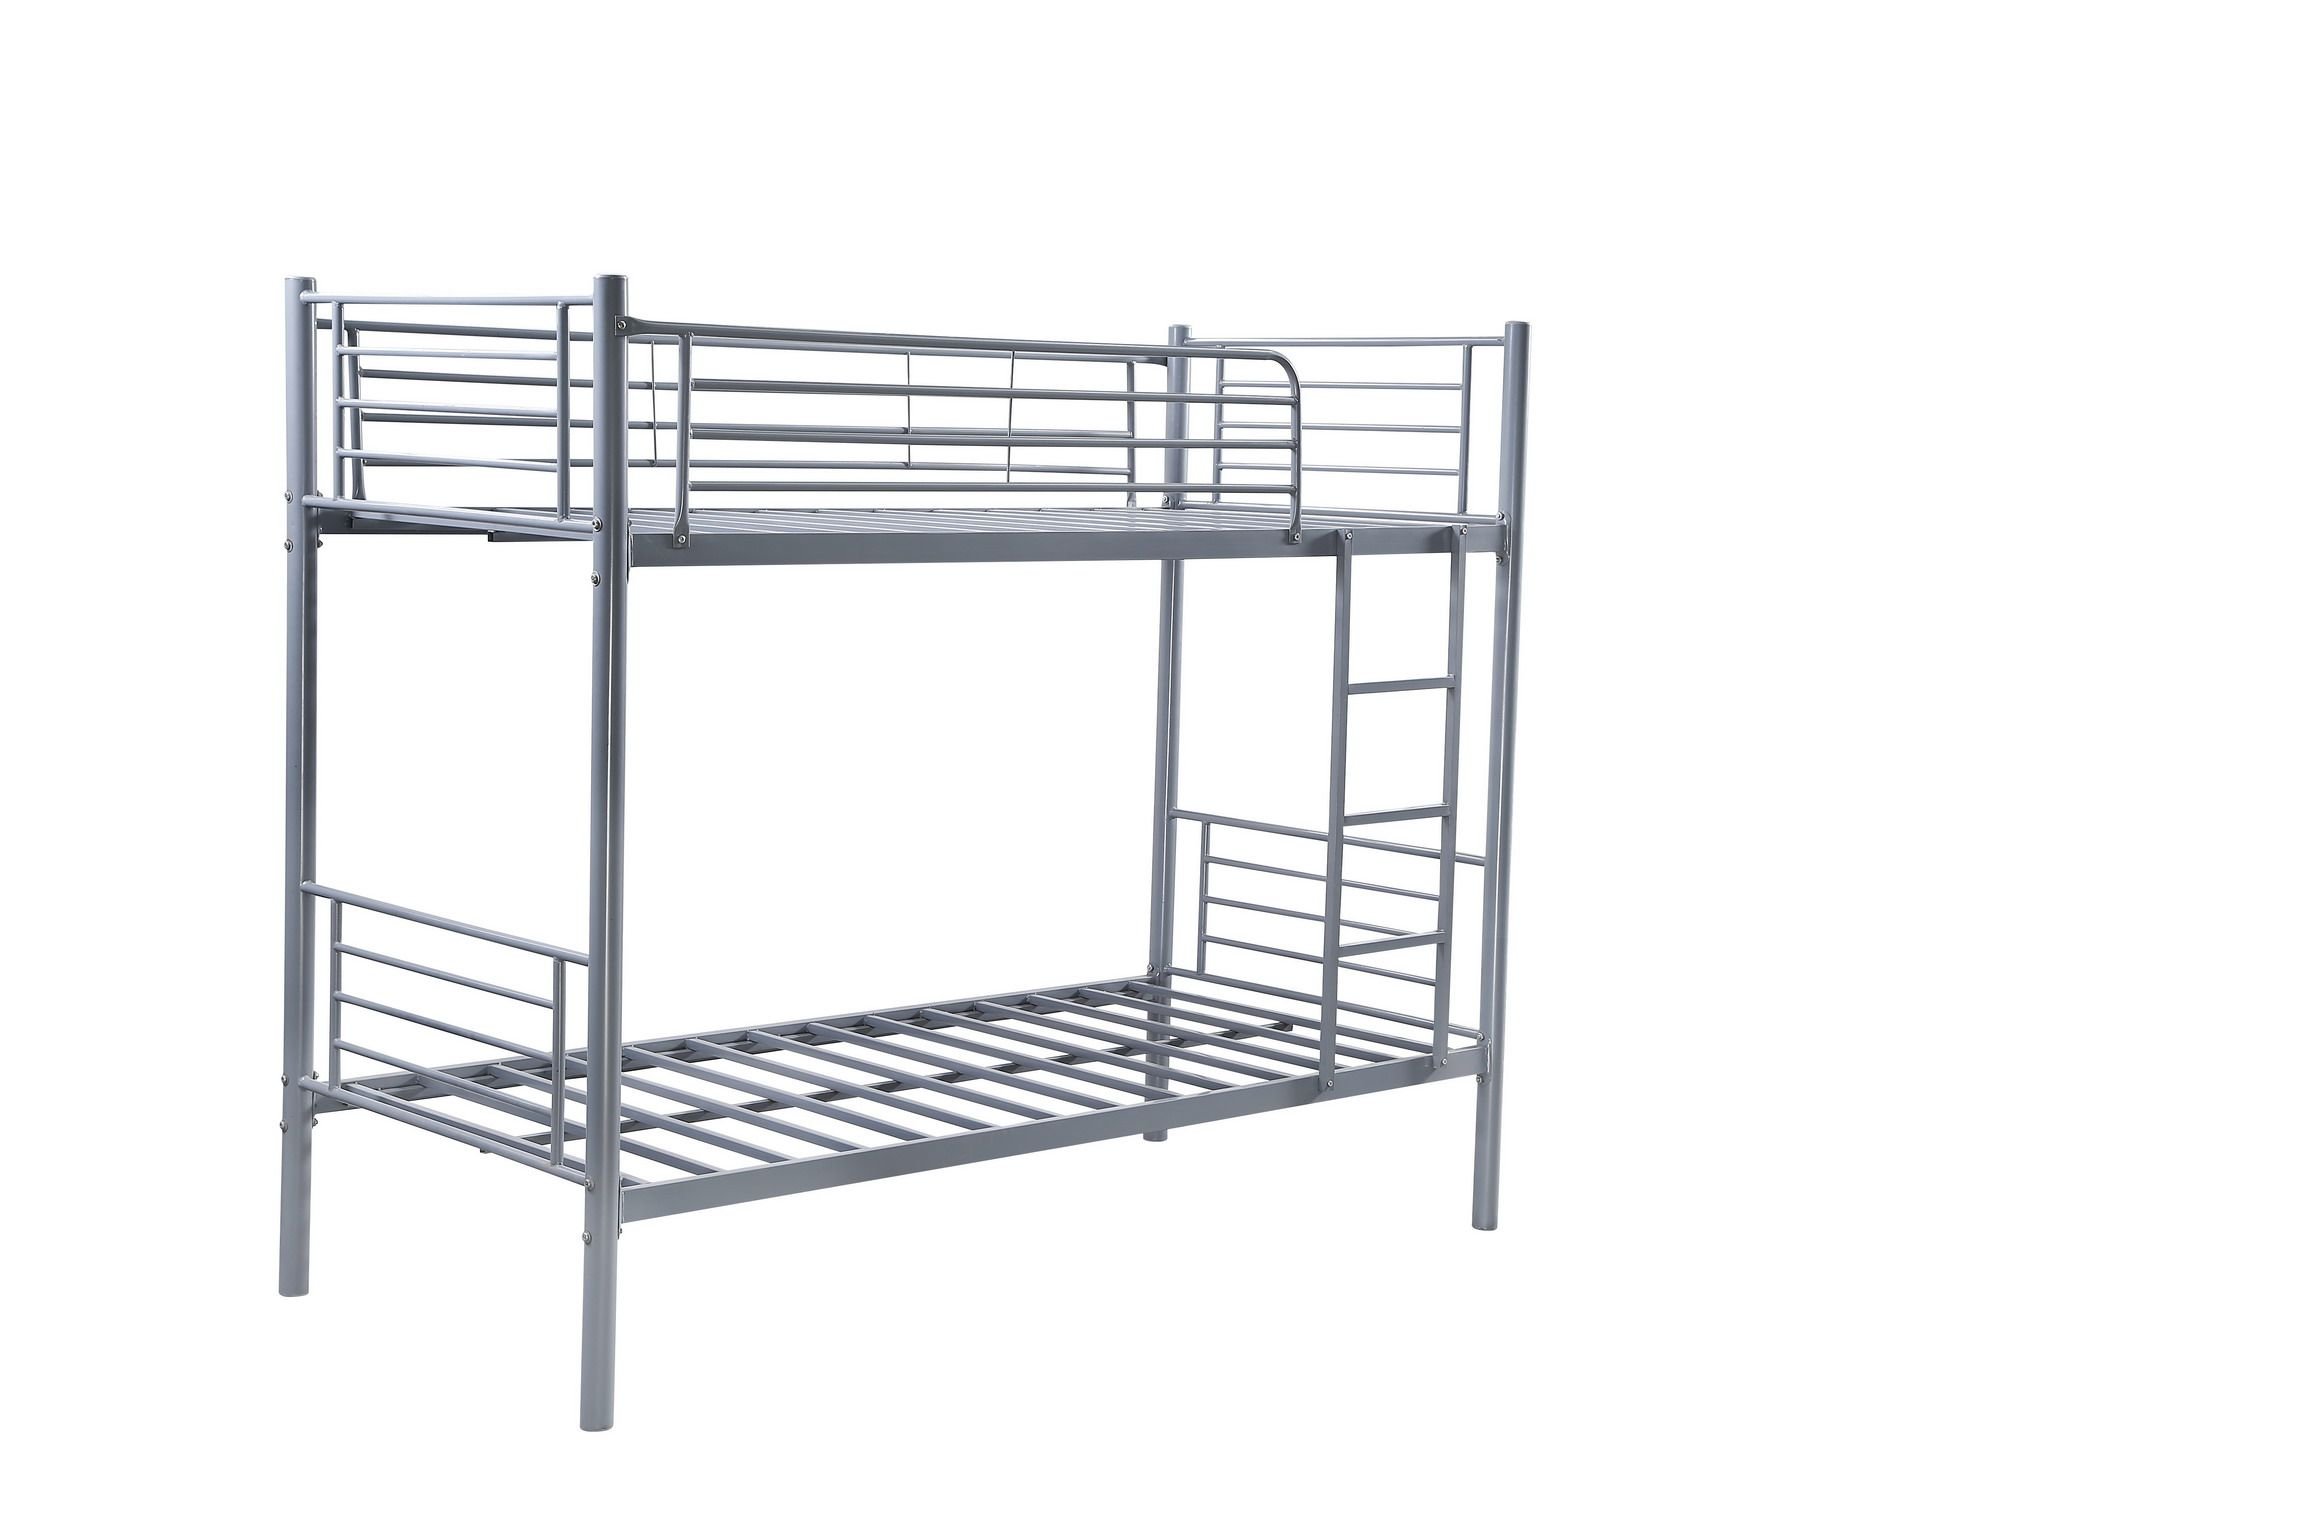 Single Metal Frame Children Space Saving Silver Bunk Bed Kids Bed Cheap Price Bed Cheap Kids Bedding Kid Spaces Space Saving